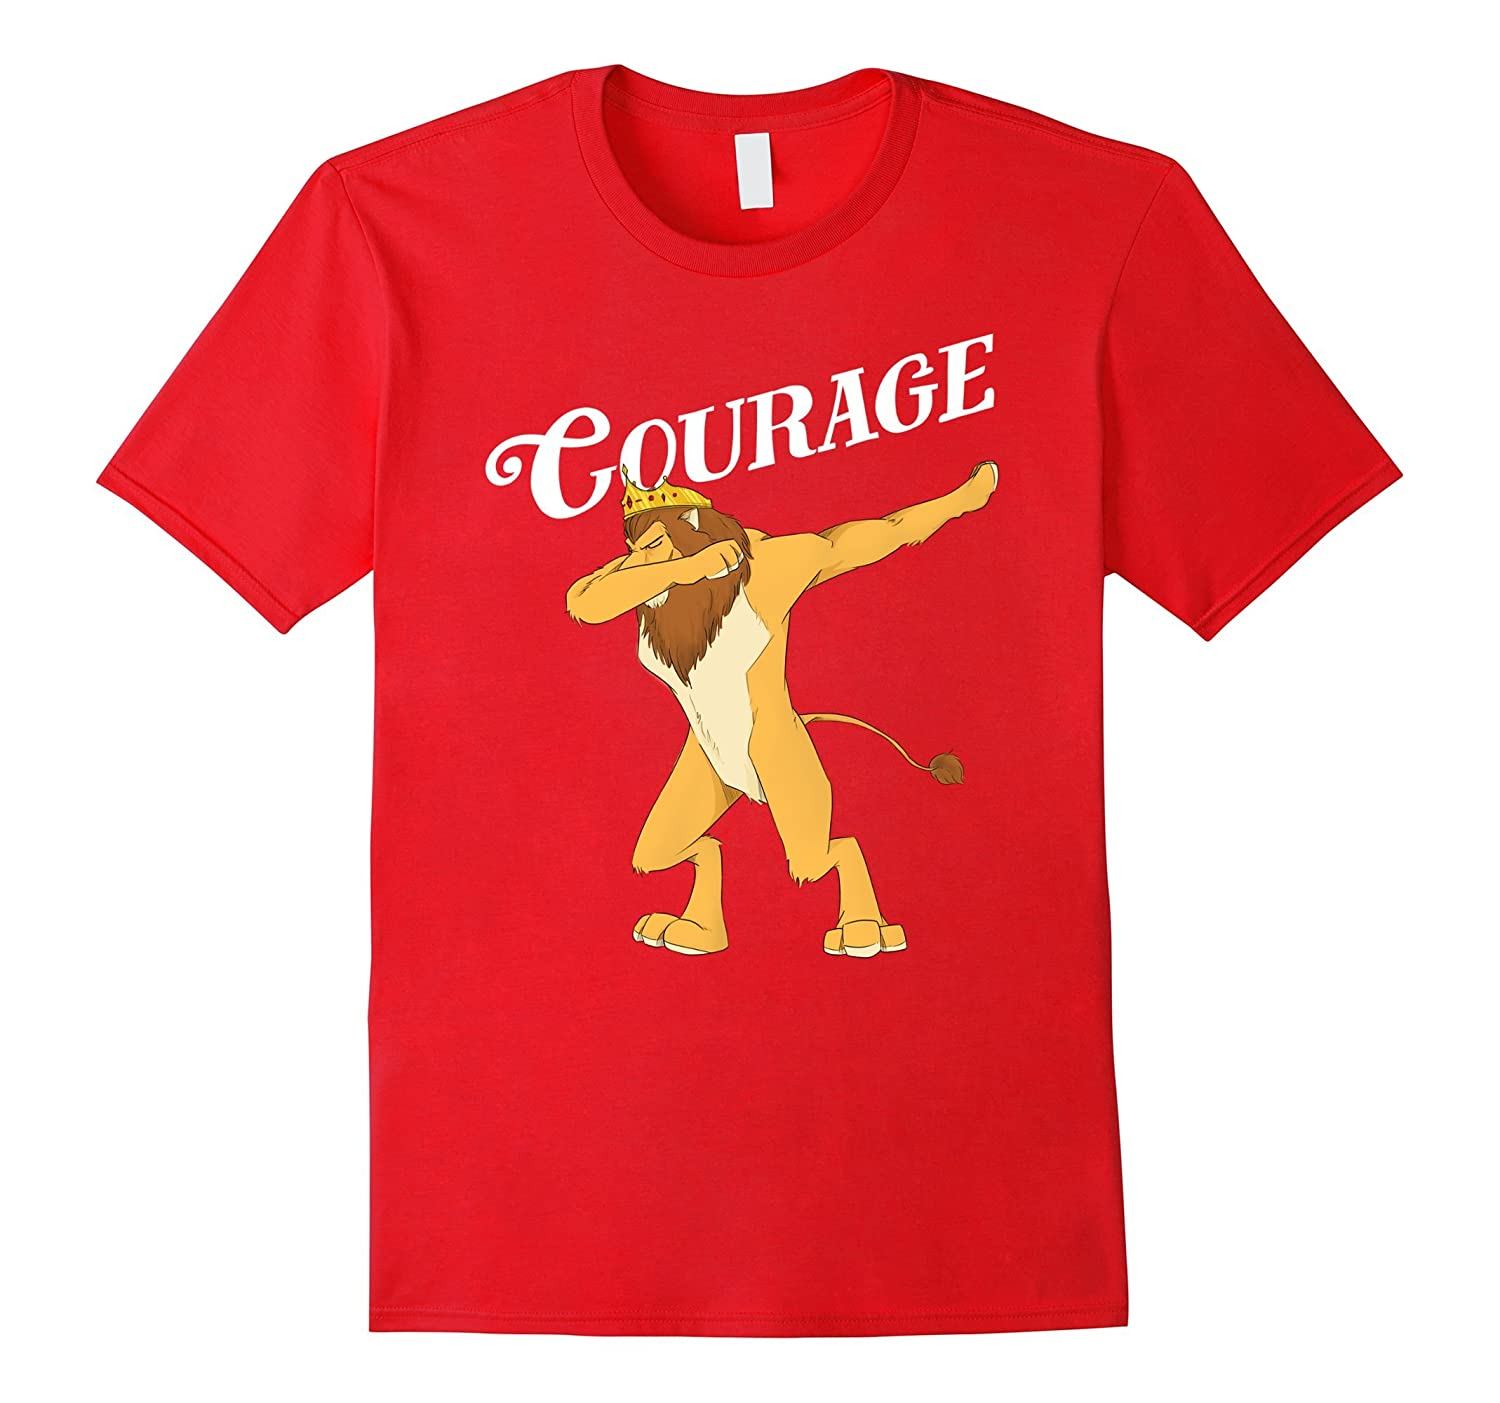 Cowardly Lion Dab T-Shirt - The Wizard Of Oz TShirt -Courage-TJ